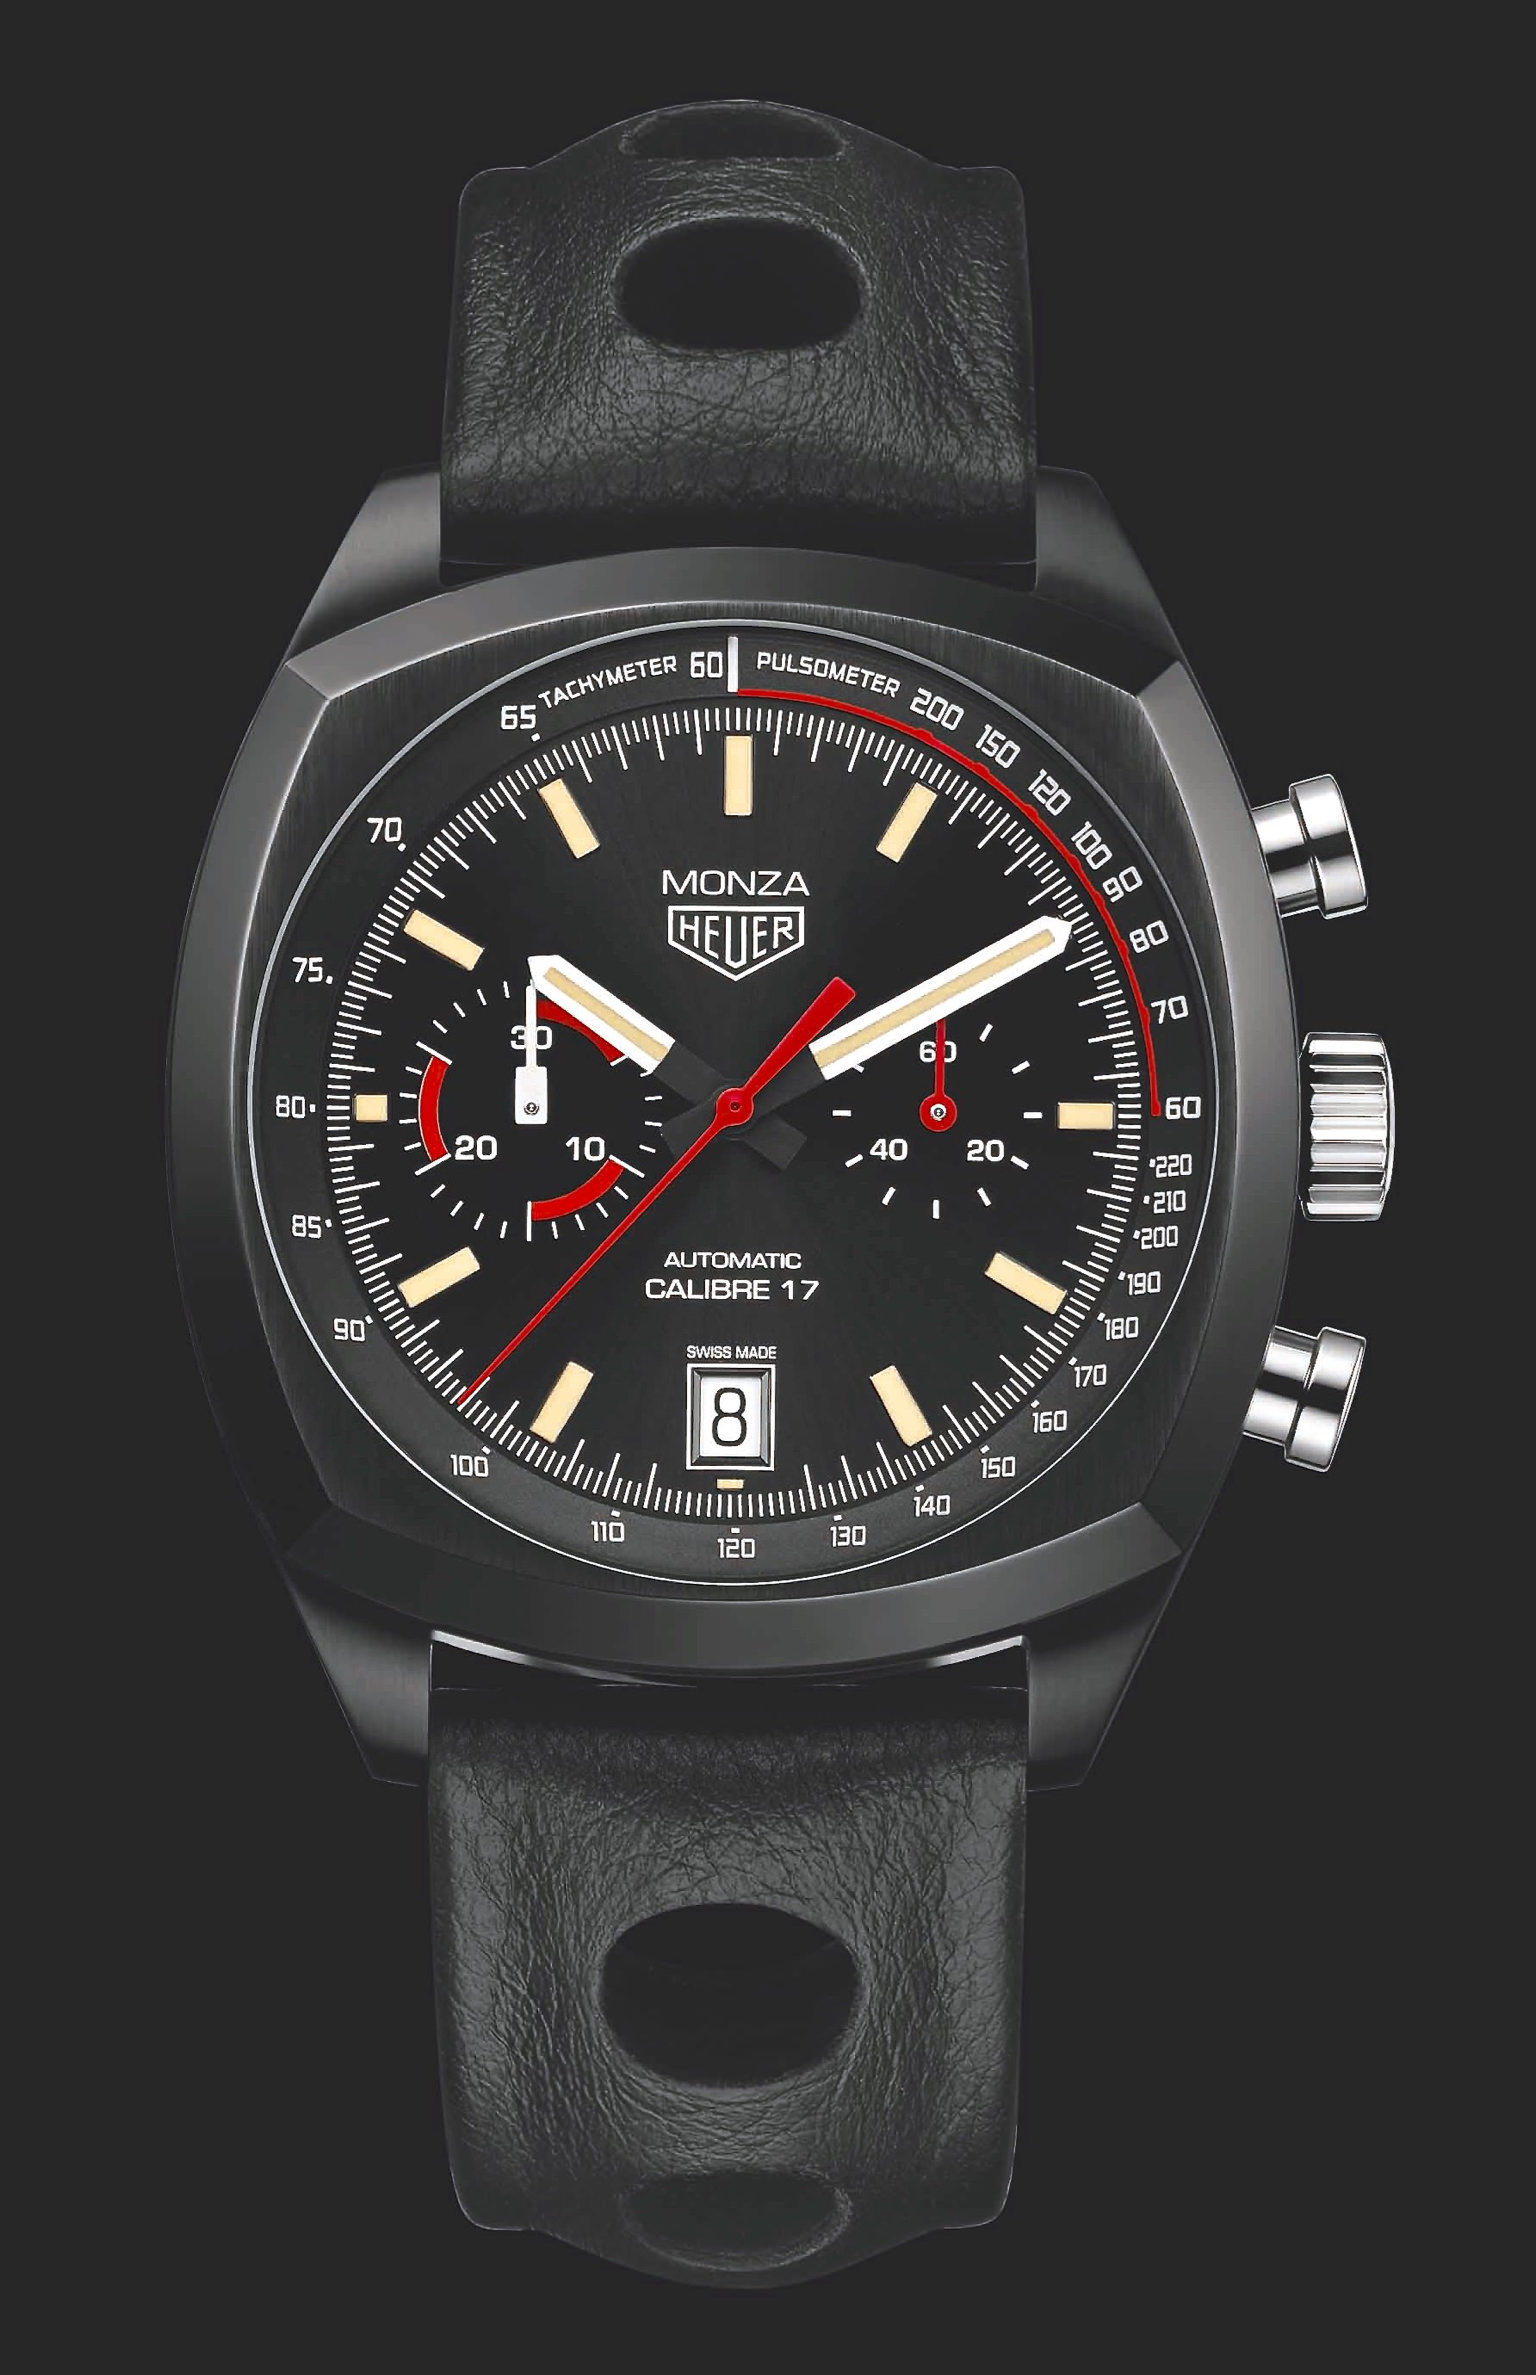 INTRODUCING: The TAG Heuer Monza CR2080, the legend is black